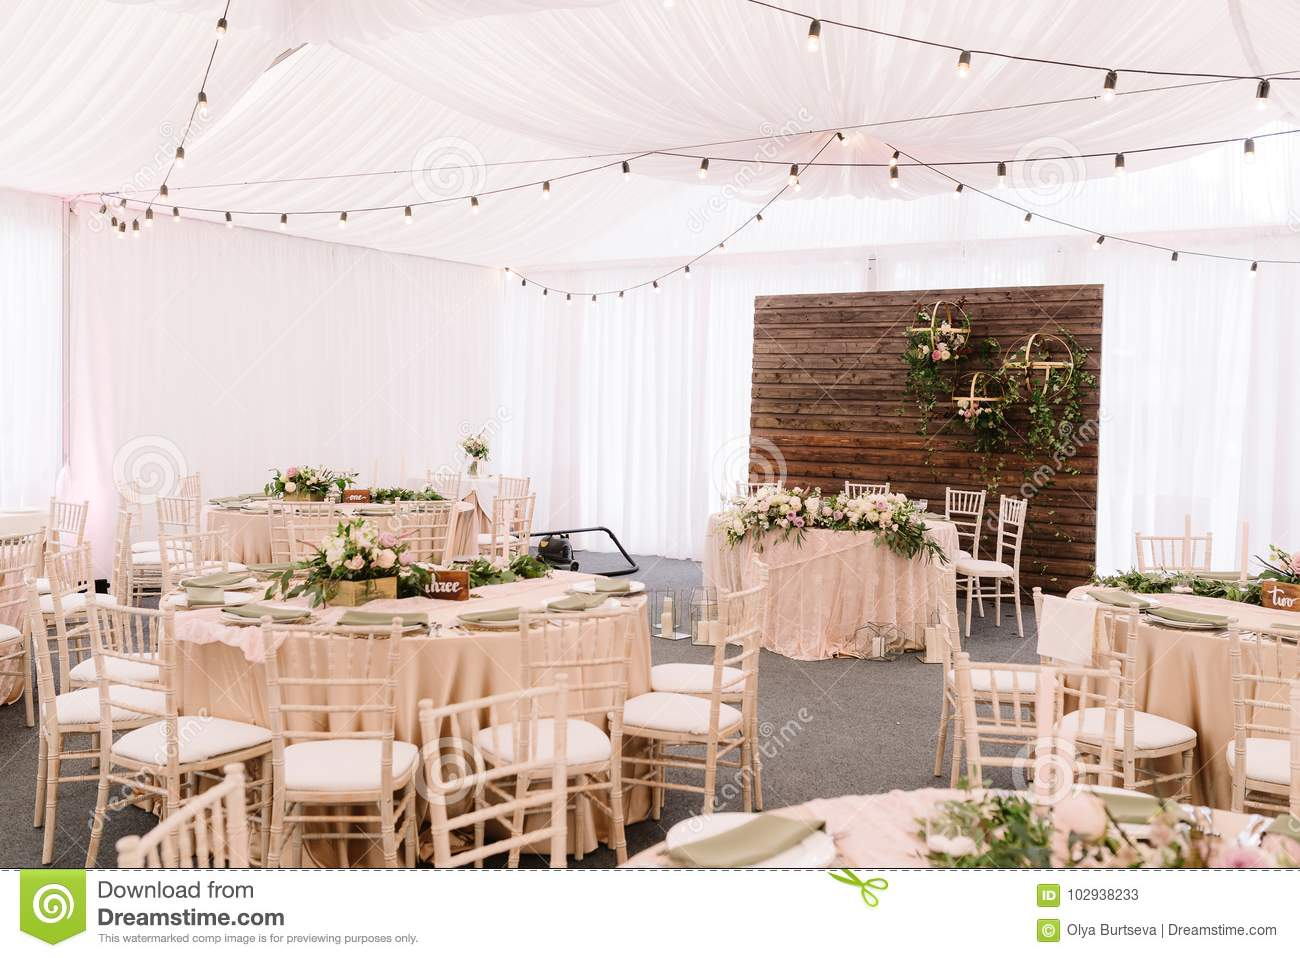 Wedding Decorated Restaurant In Light Colors And Rustic Style Stock Image Image Of Glass Nature 102938233